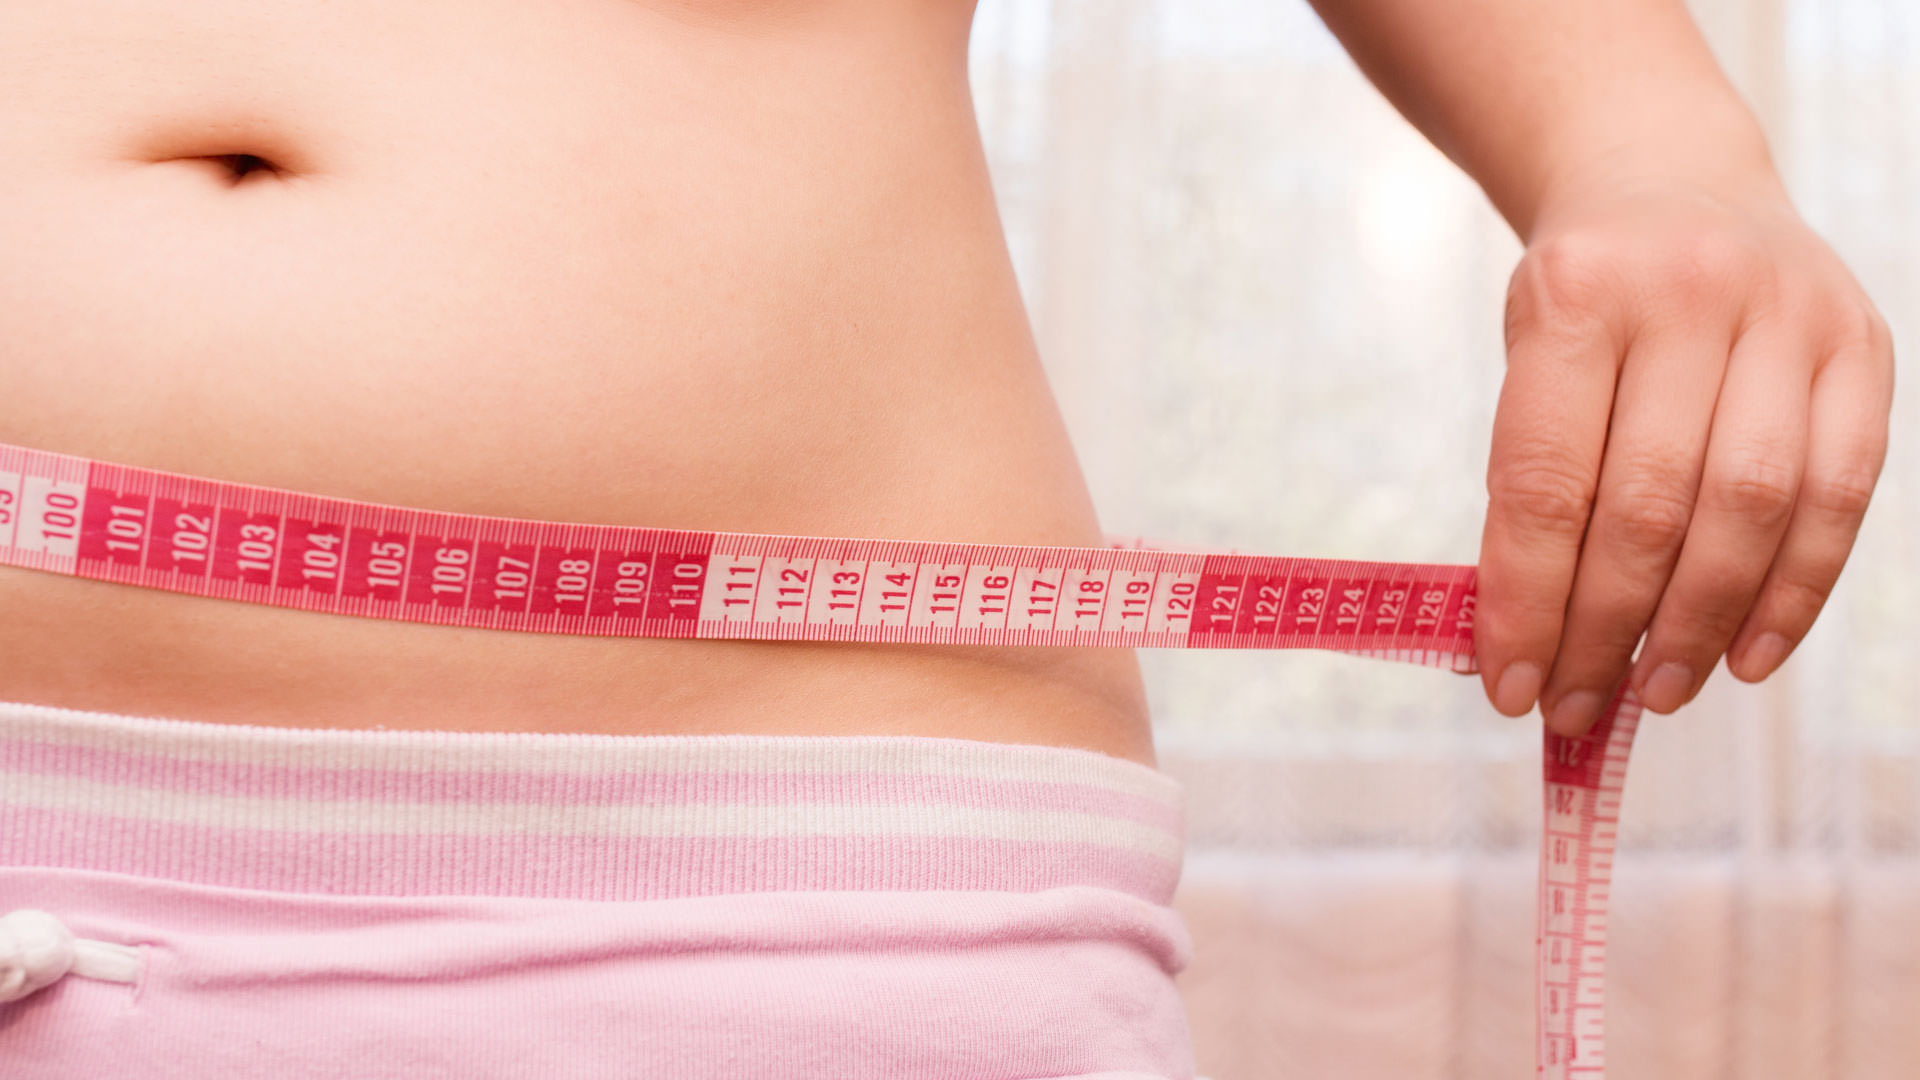 6 Foods to STOP Eating Immediately For Weight Loss